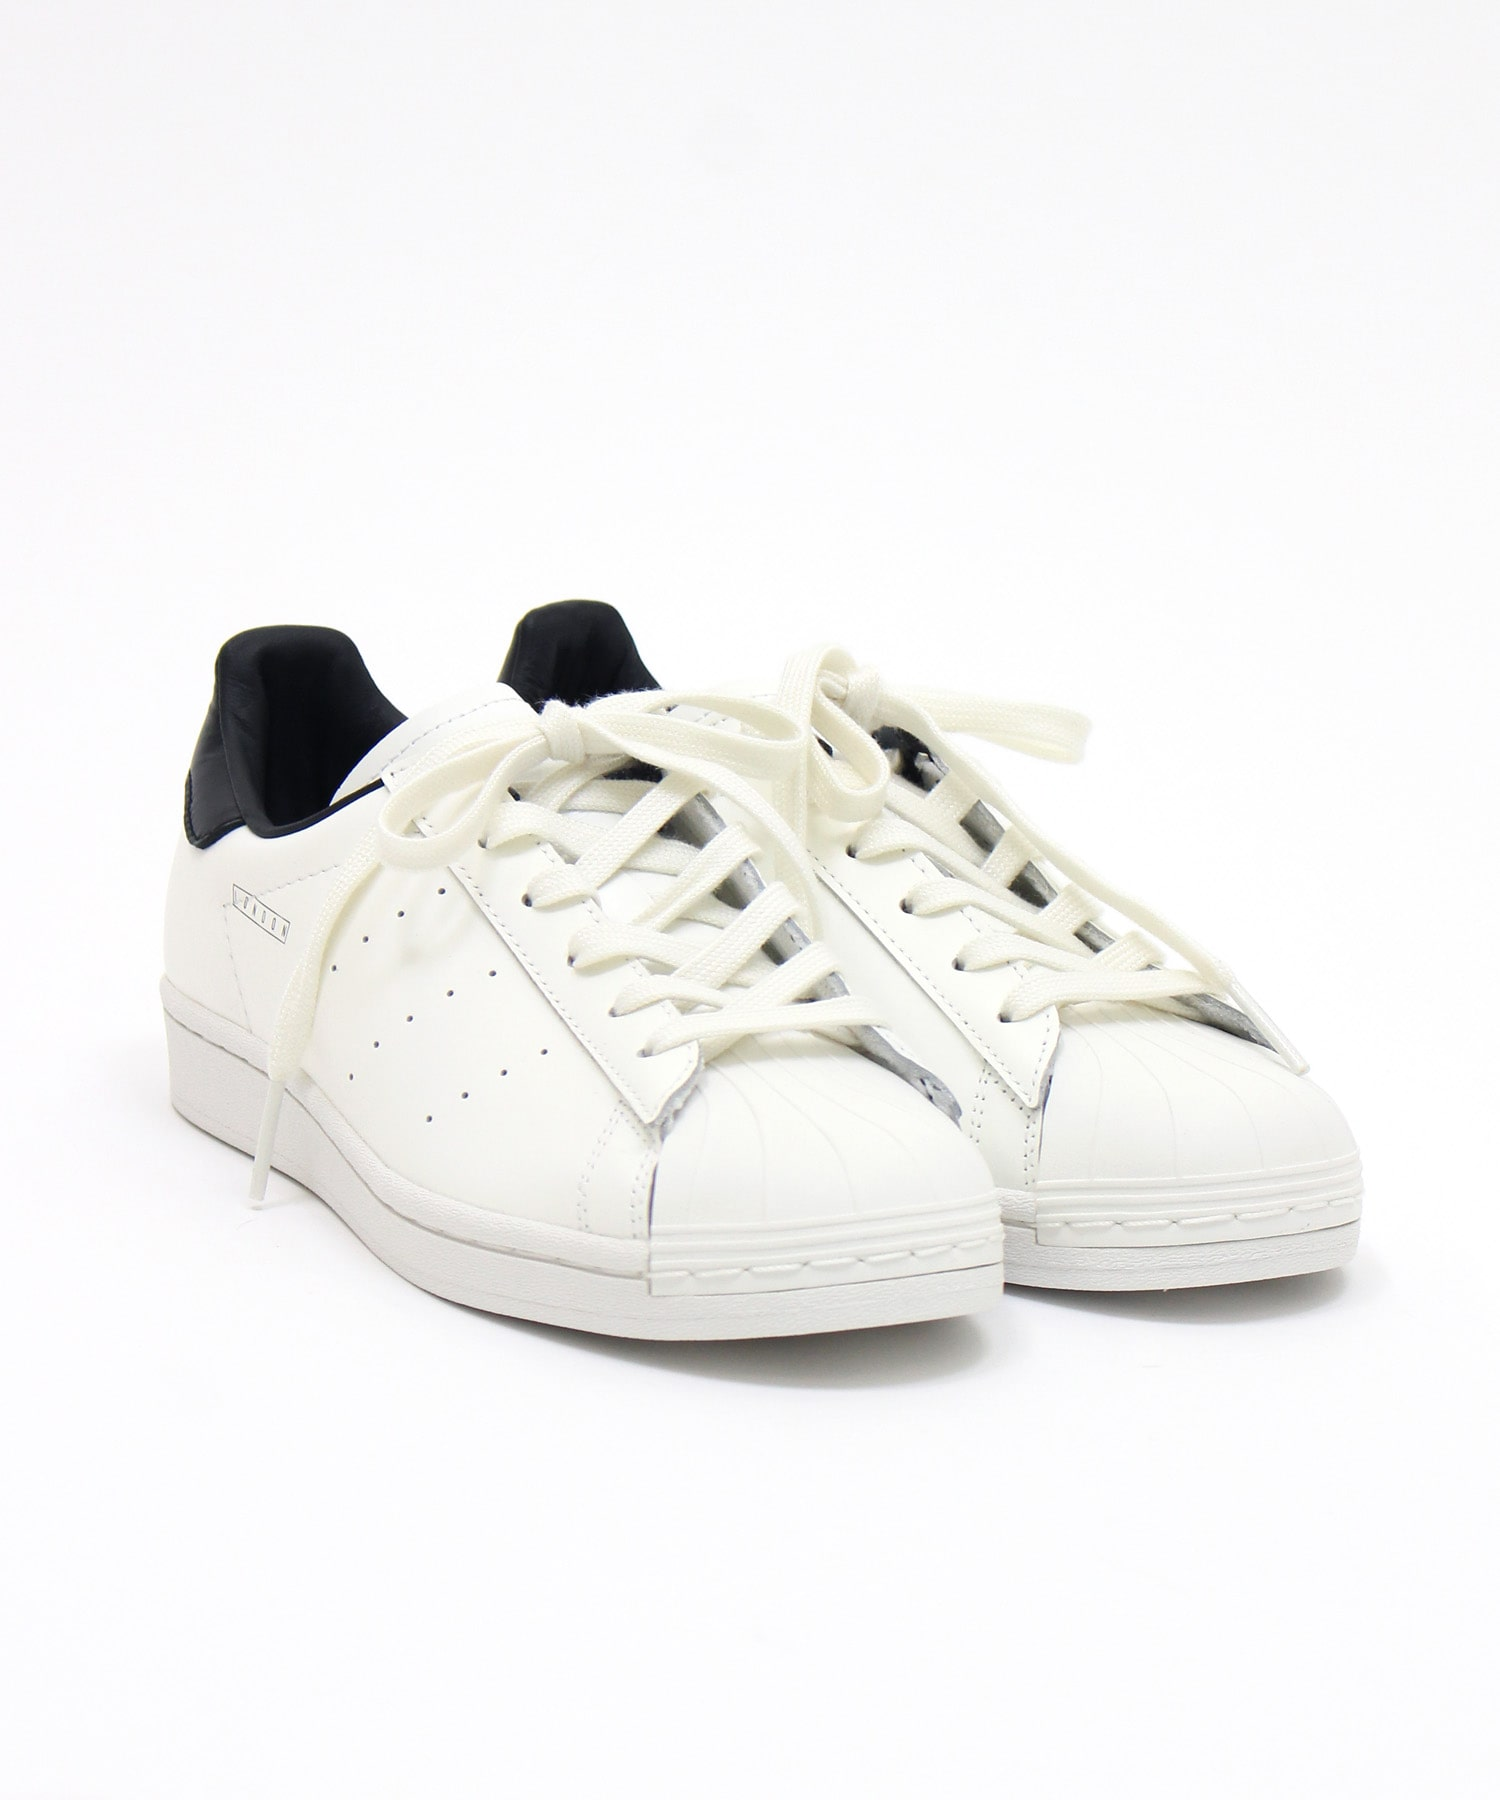 <adidas originals>SUPERSTAR PURE